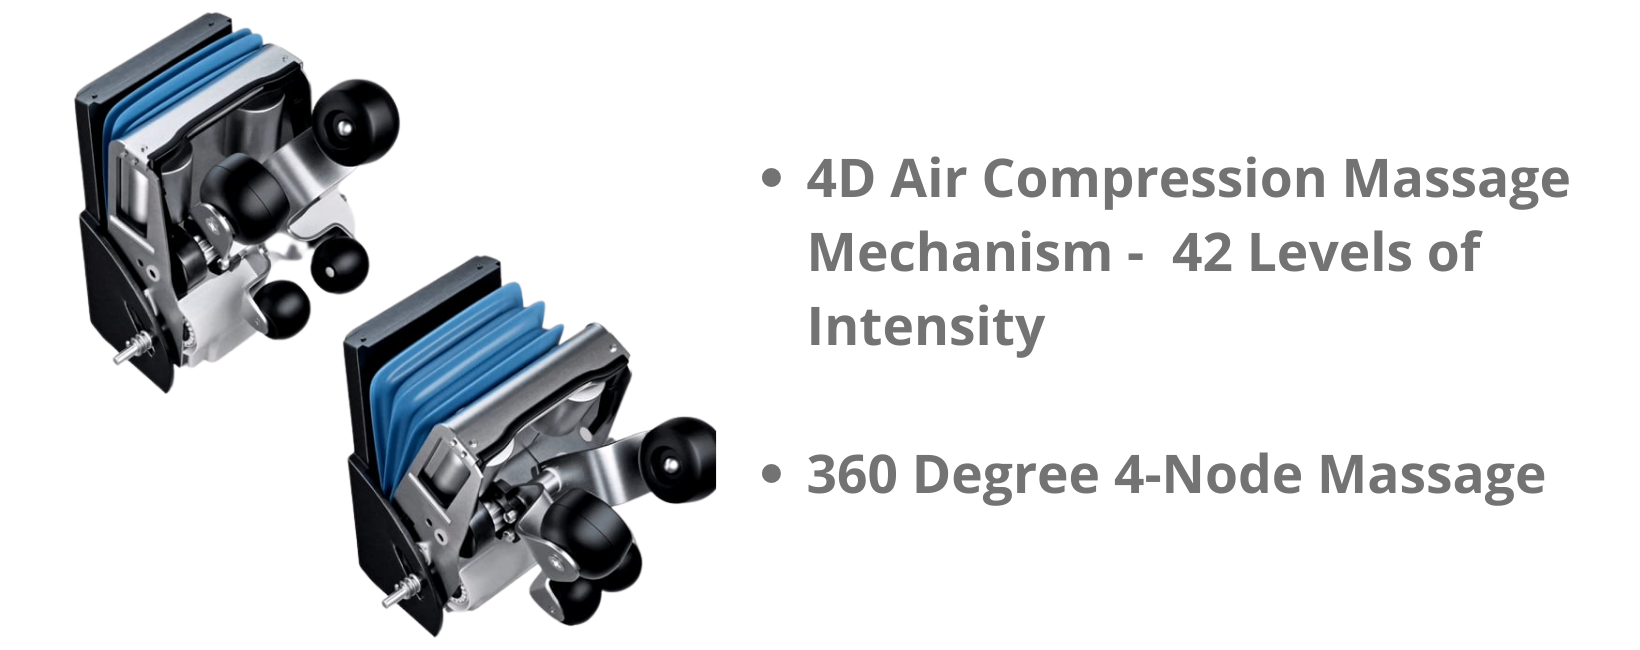 """360 Degree 4-Node Massage & 4D Air Compression Massage Mechanism: Even beyond traditional 3D mechanical massage movement, the Floridian 4D Massage Expert uses """"Air Compression Massage Mechanism"""", truly offer 4D programs to include the dimension of variable speed. Massage strokes speed up and slow down mid-stroke, just like the hands of a professional massage therapist."""